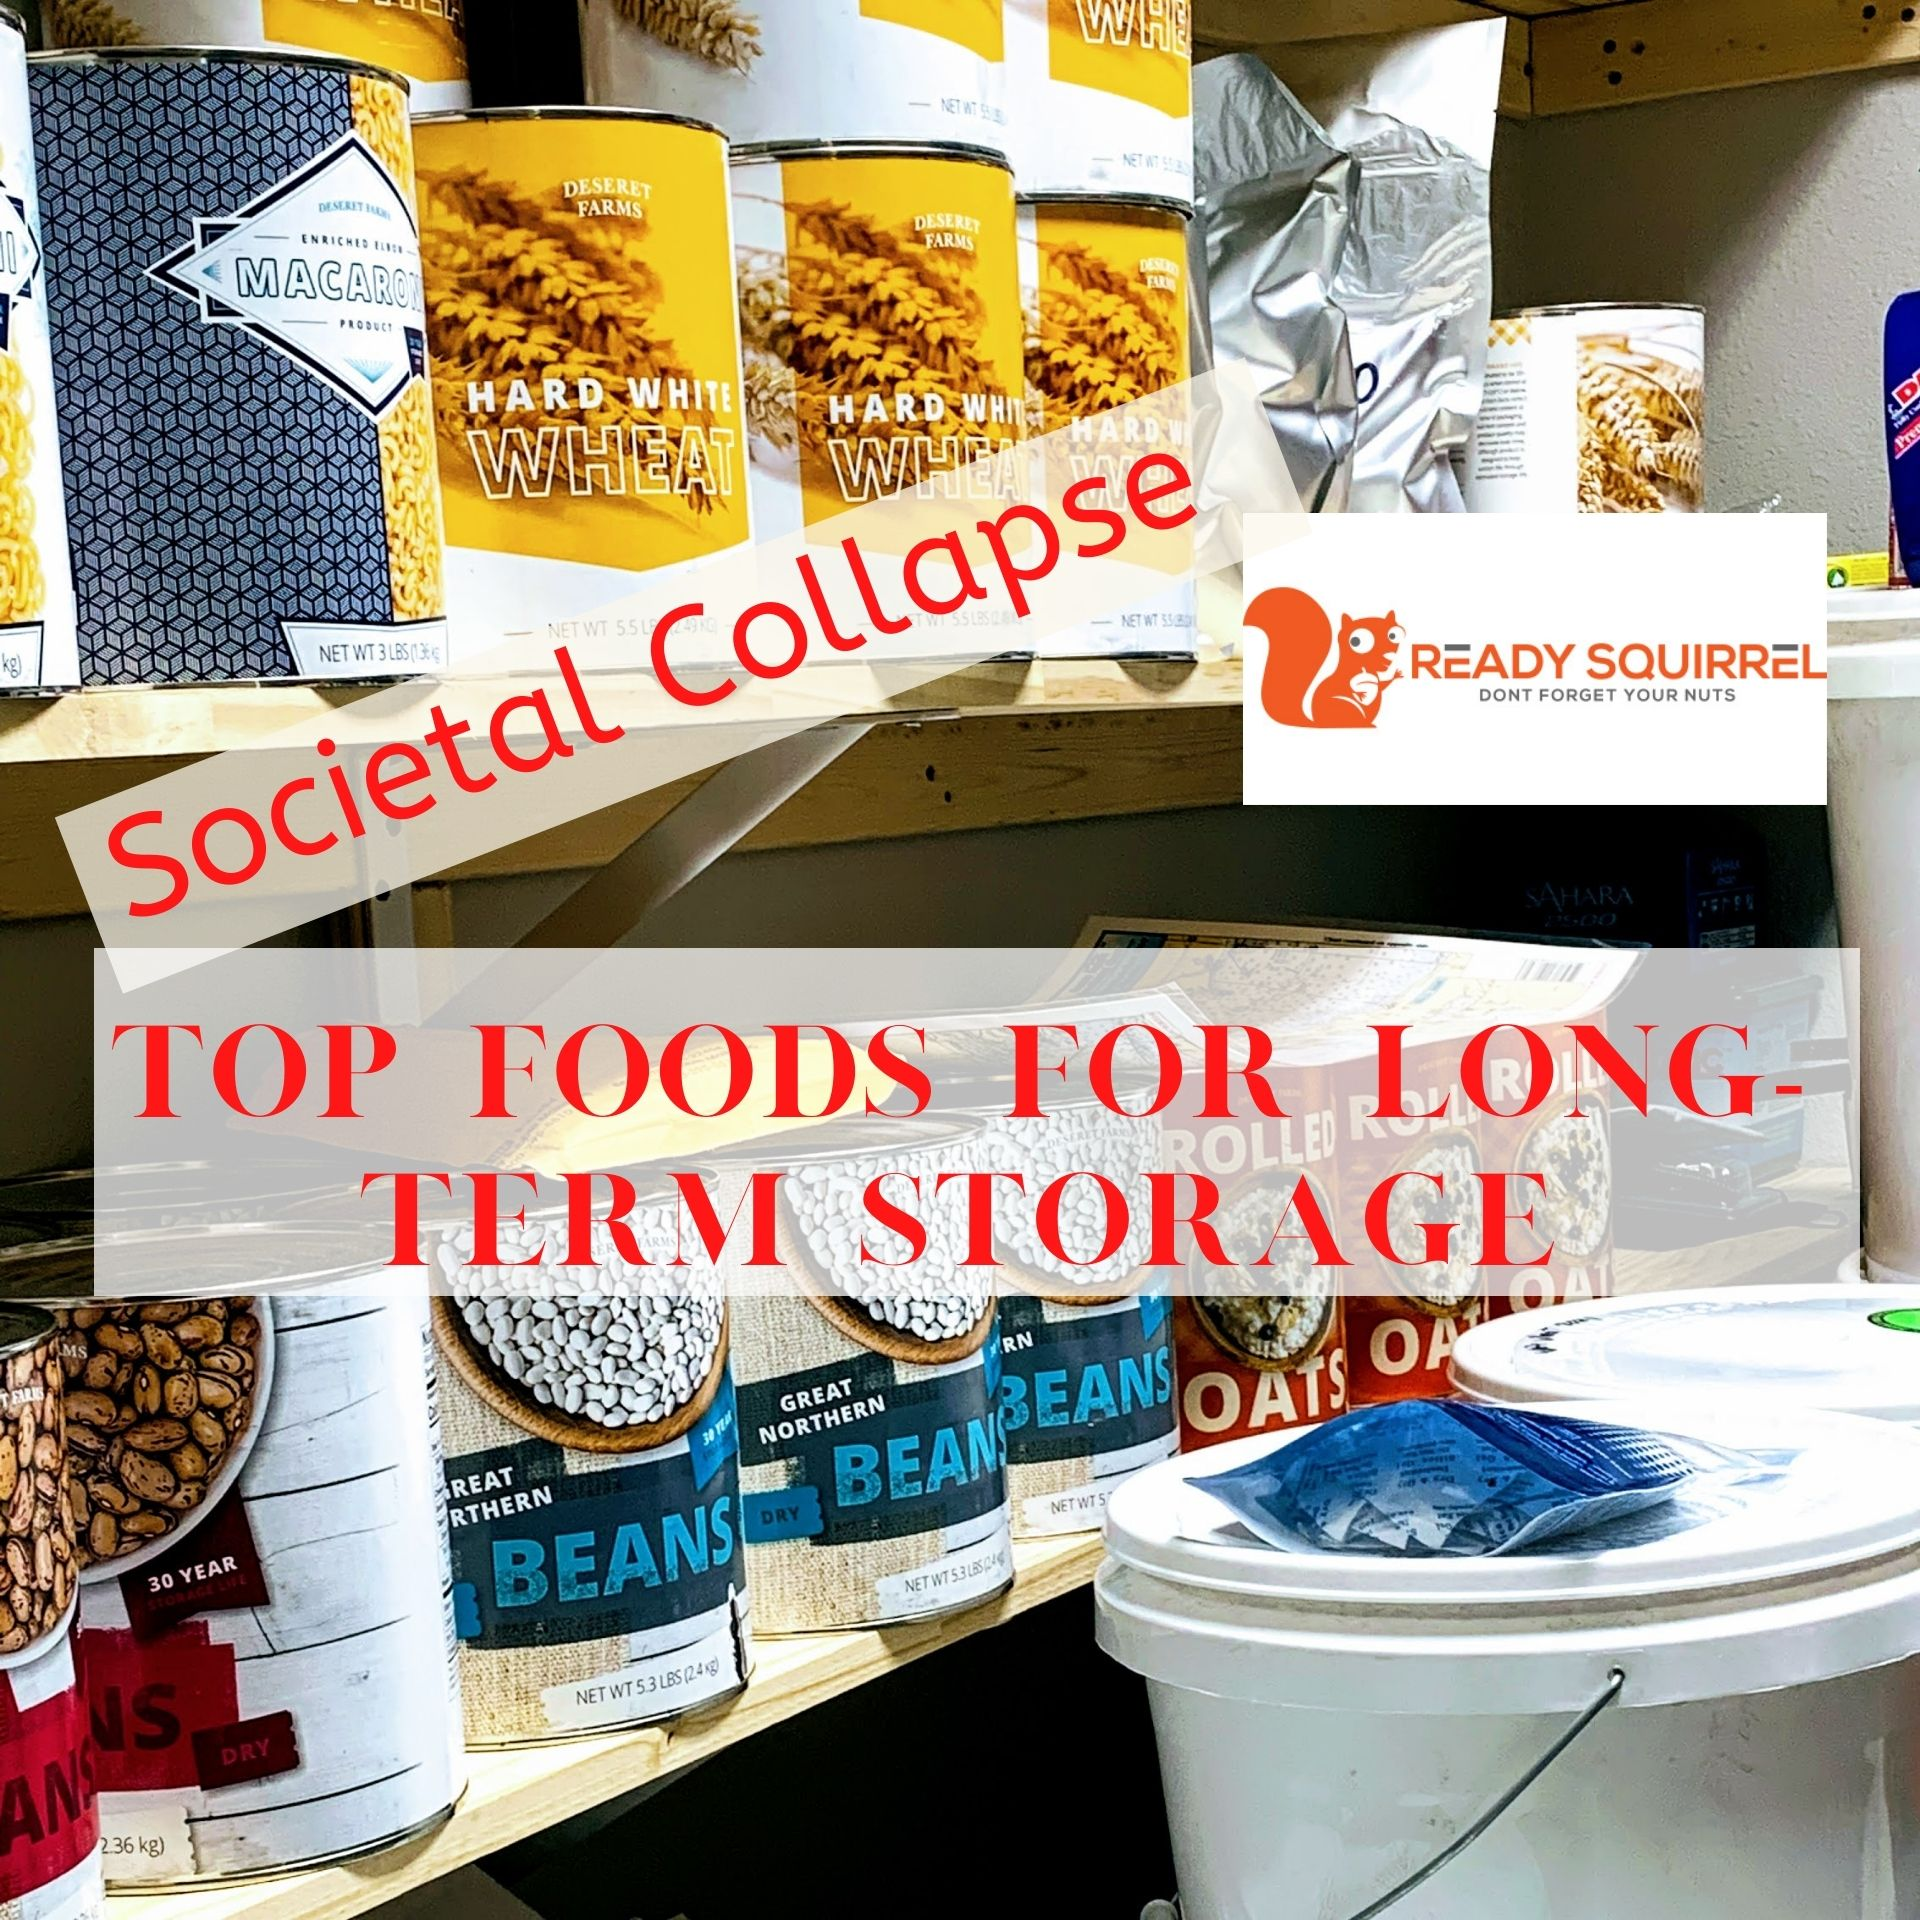 Societal Collapse: 36 Top Foods For Storage